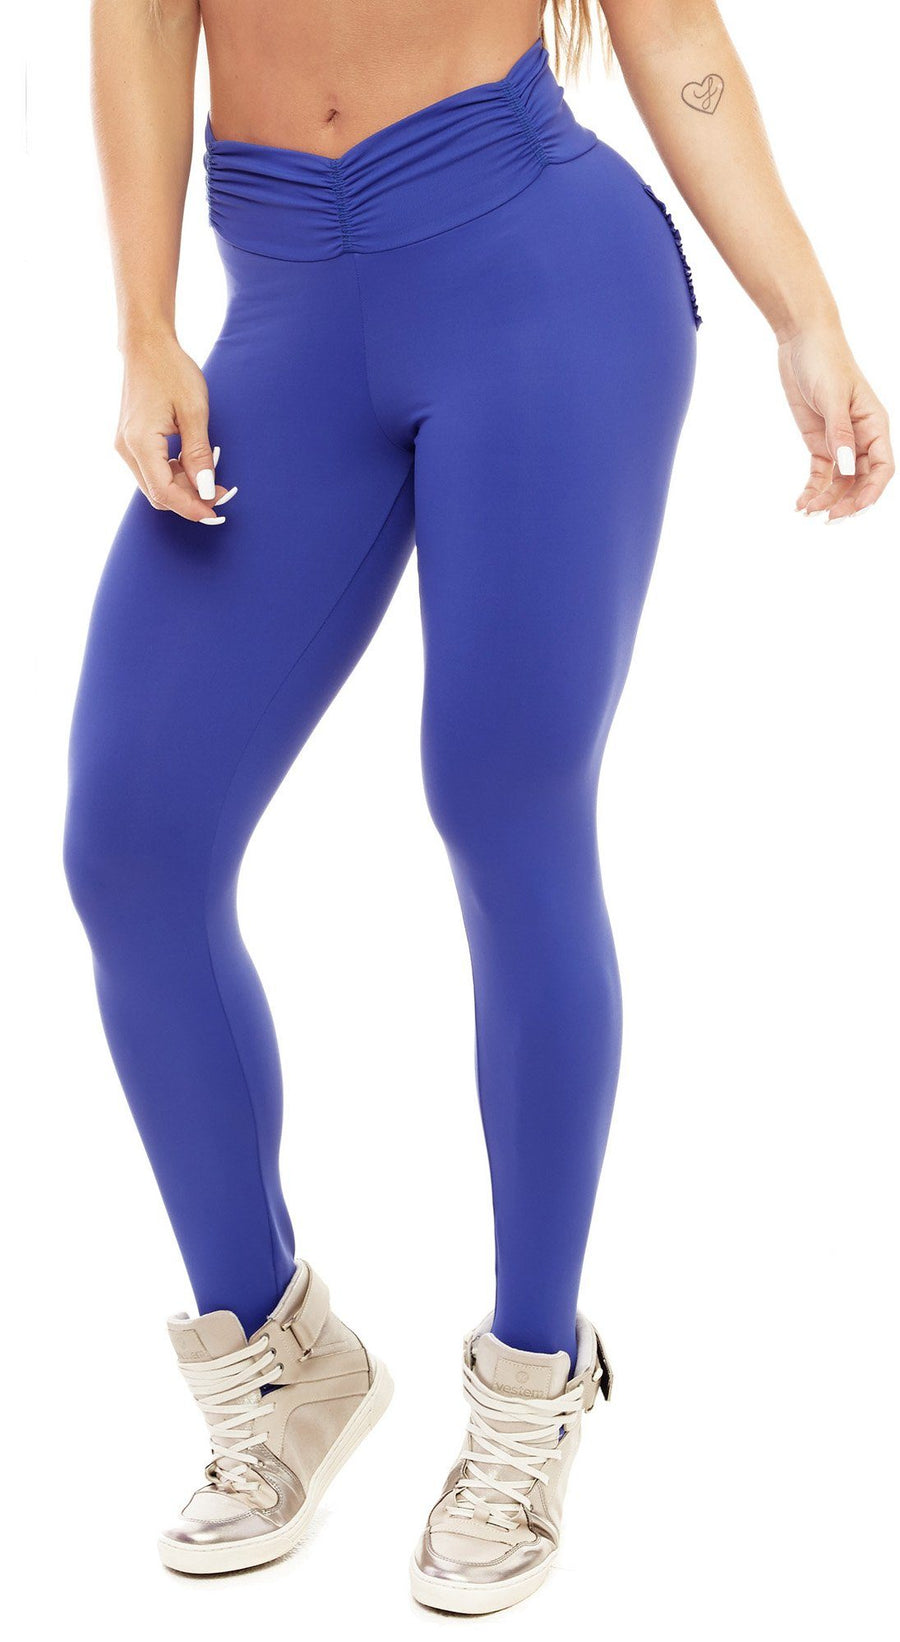 Brazilian Workout Legging - Booty Up Pockets Blue